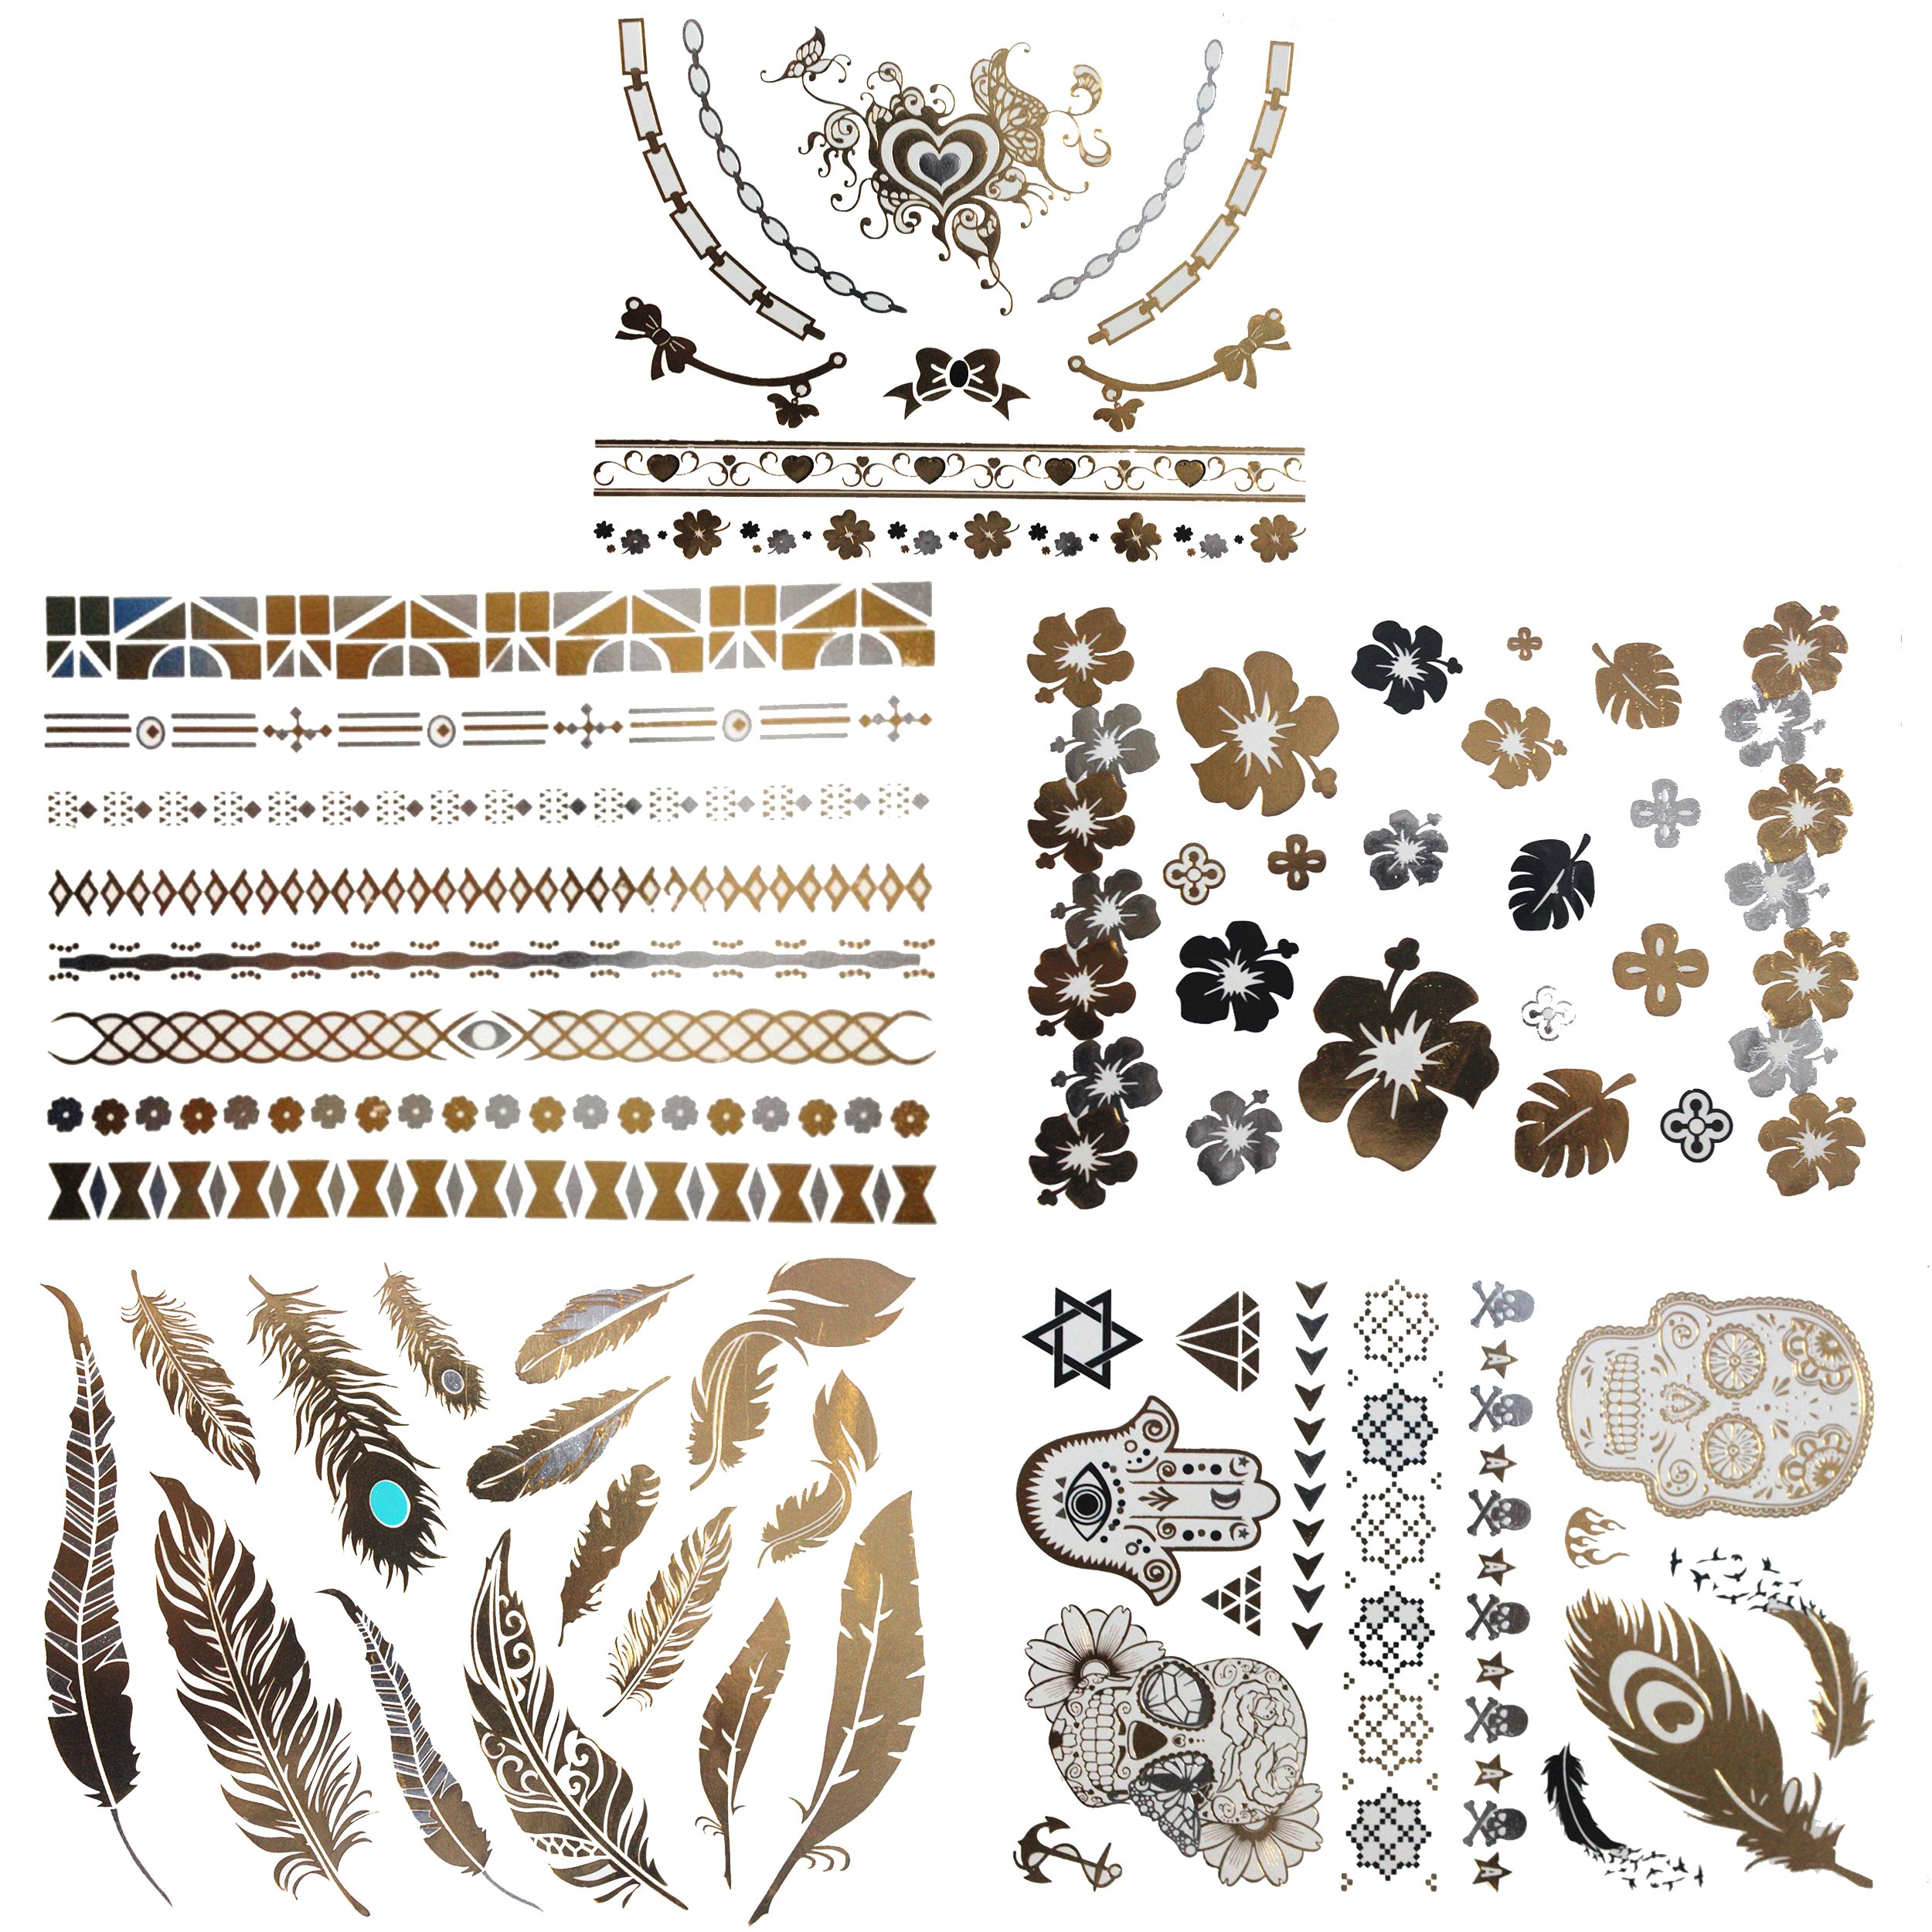 Metallic Temporary Tattoo - 65+ Premium Tattoos Classic Gold, Silver &Sky Blue Design - 5 Sheets - Perfect for Arm, Wrist, Neck & Face - BEST DEAL ON AMAZON